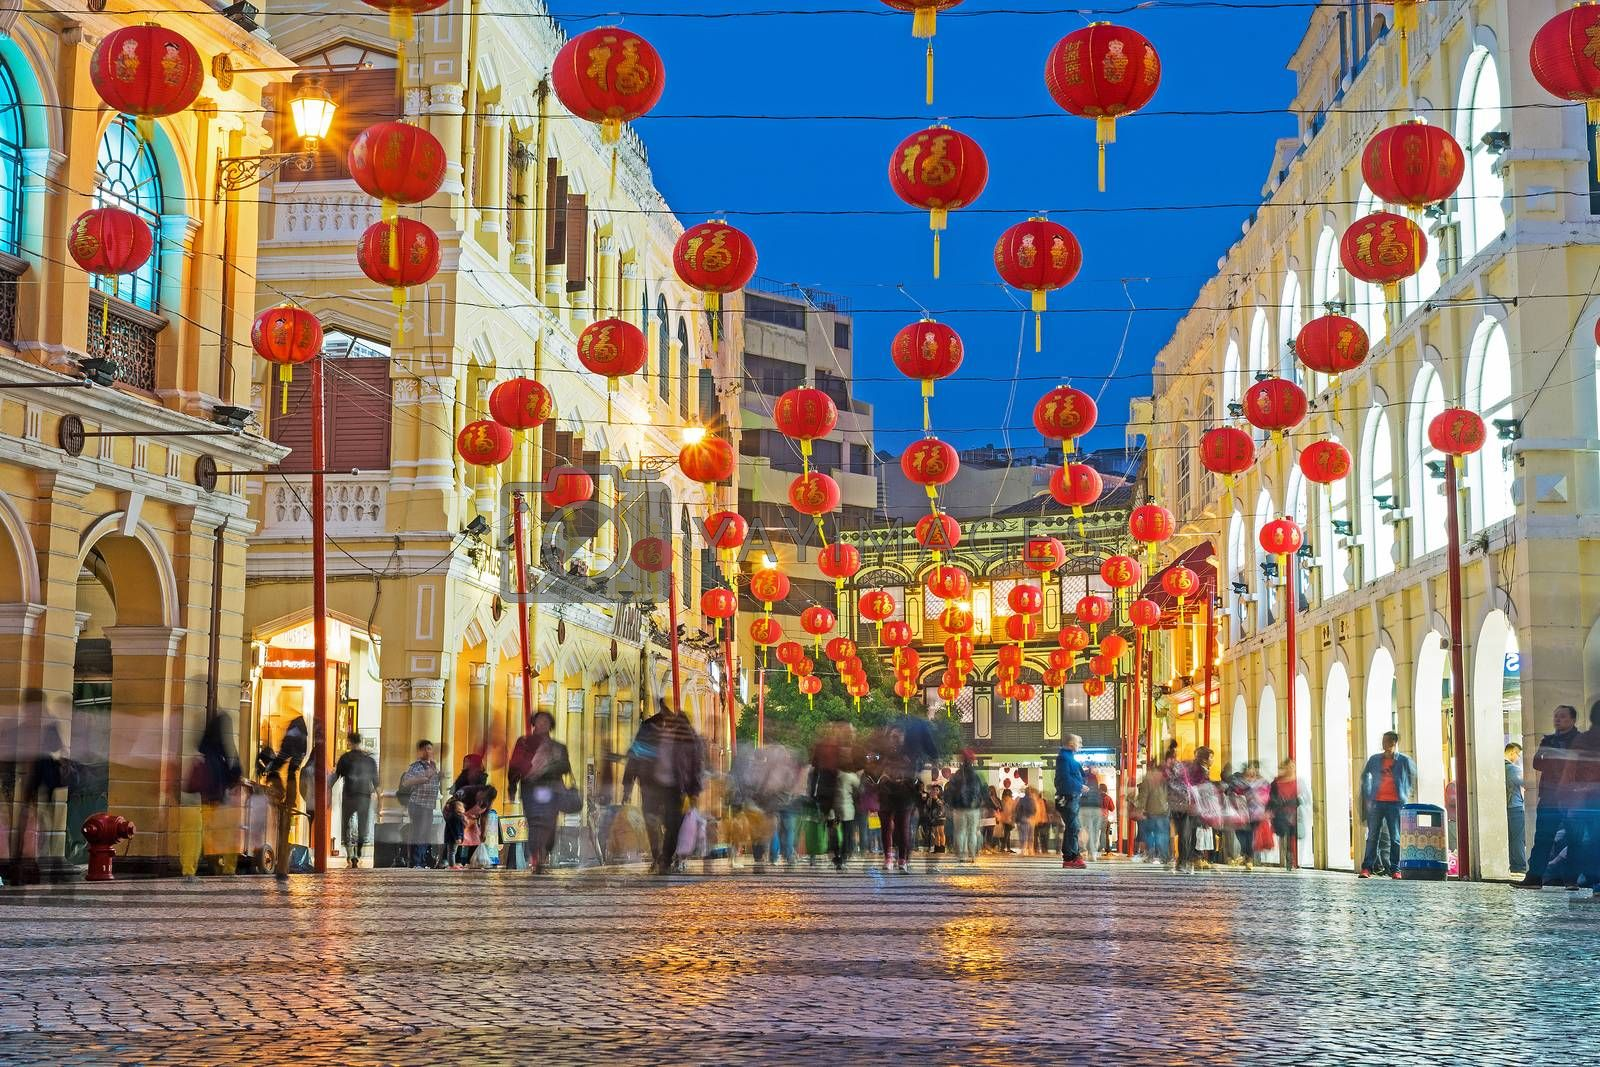 MACAU, MACAU - JANUARY 11,2016 - Senado Square nigth view of Macau. This square is the largest in Macau. Macau is a former Portuguese colony.